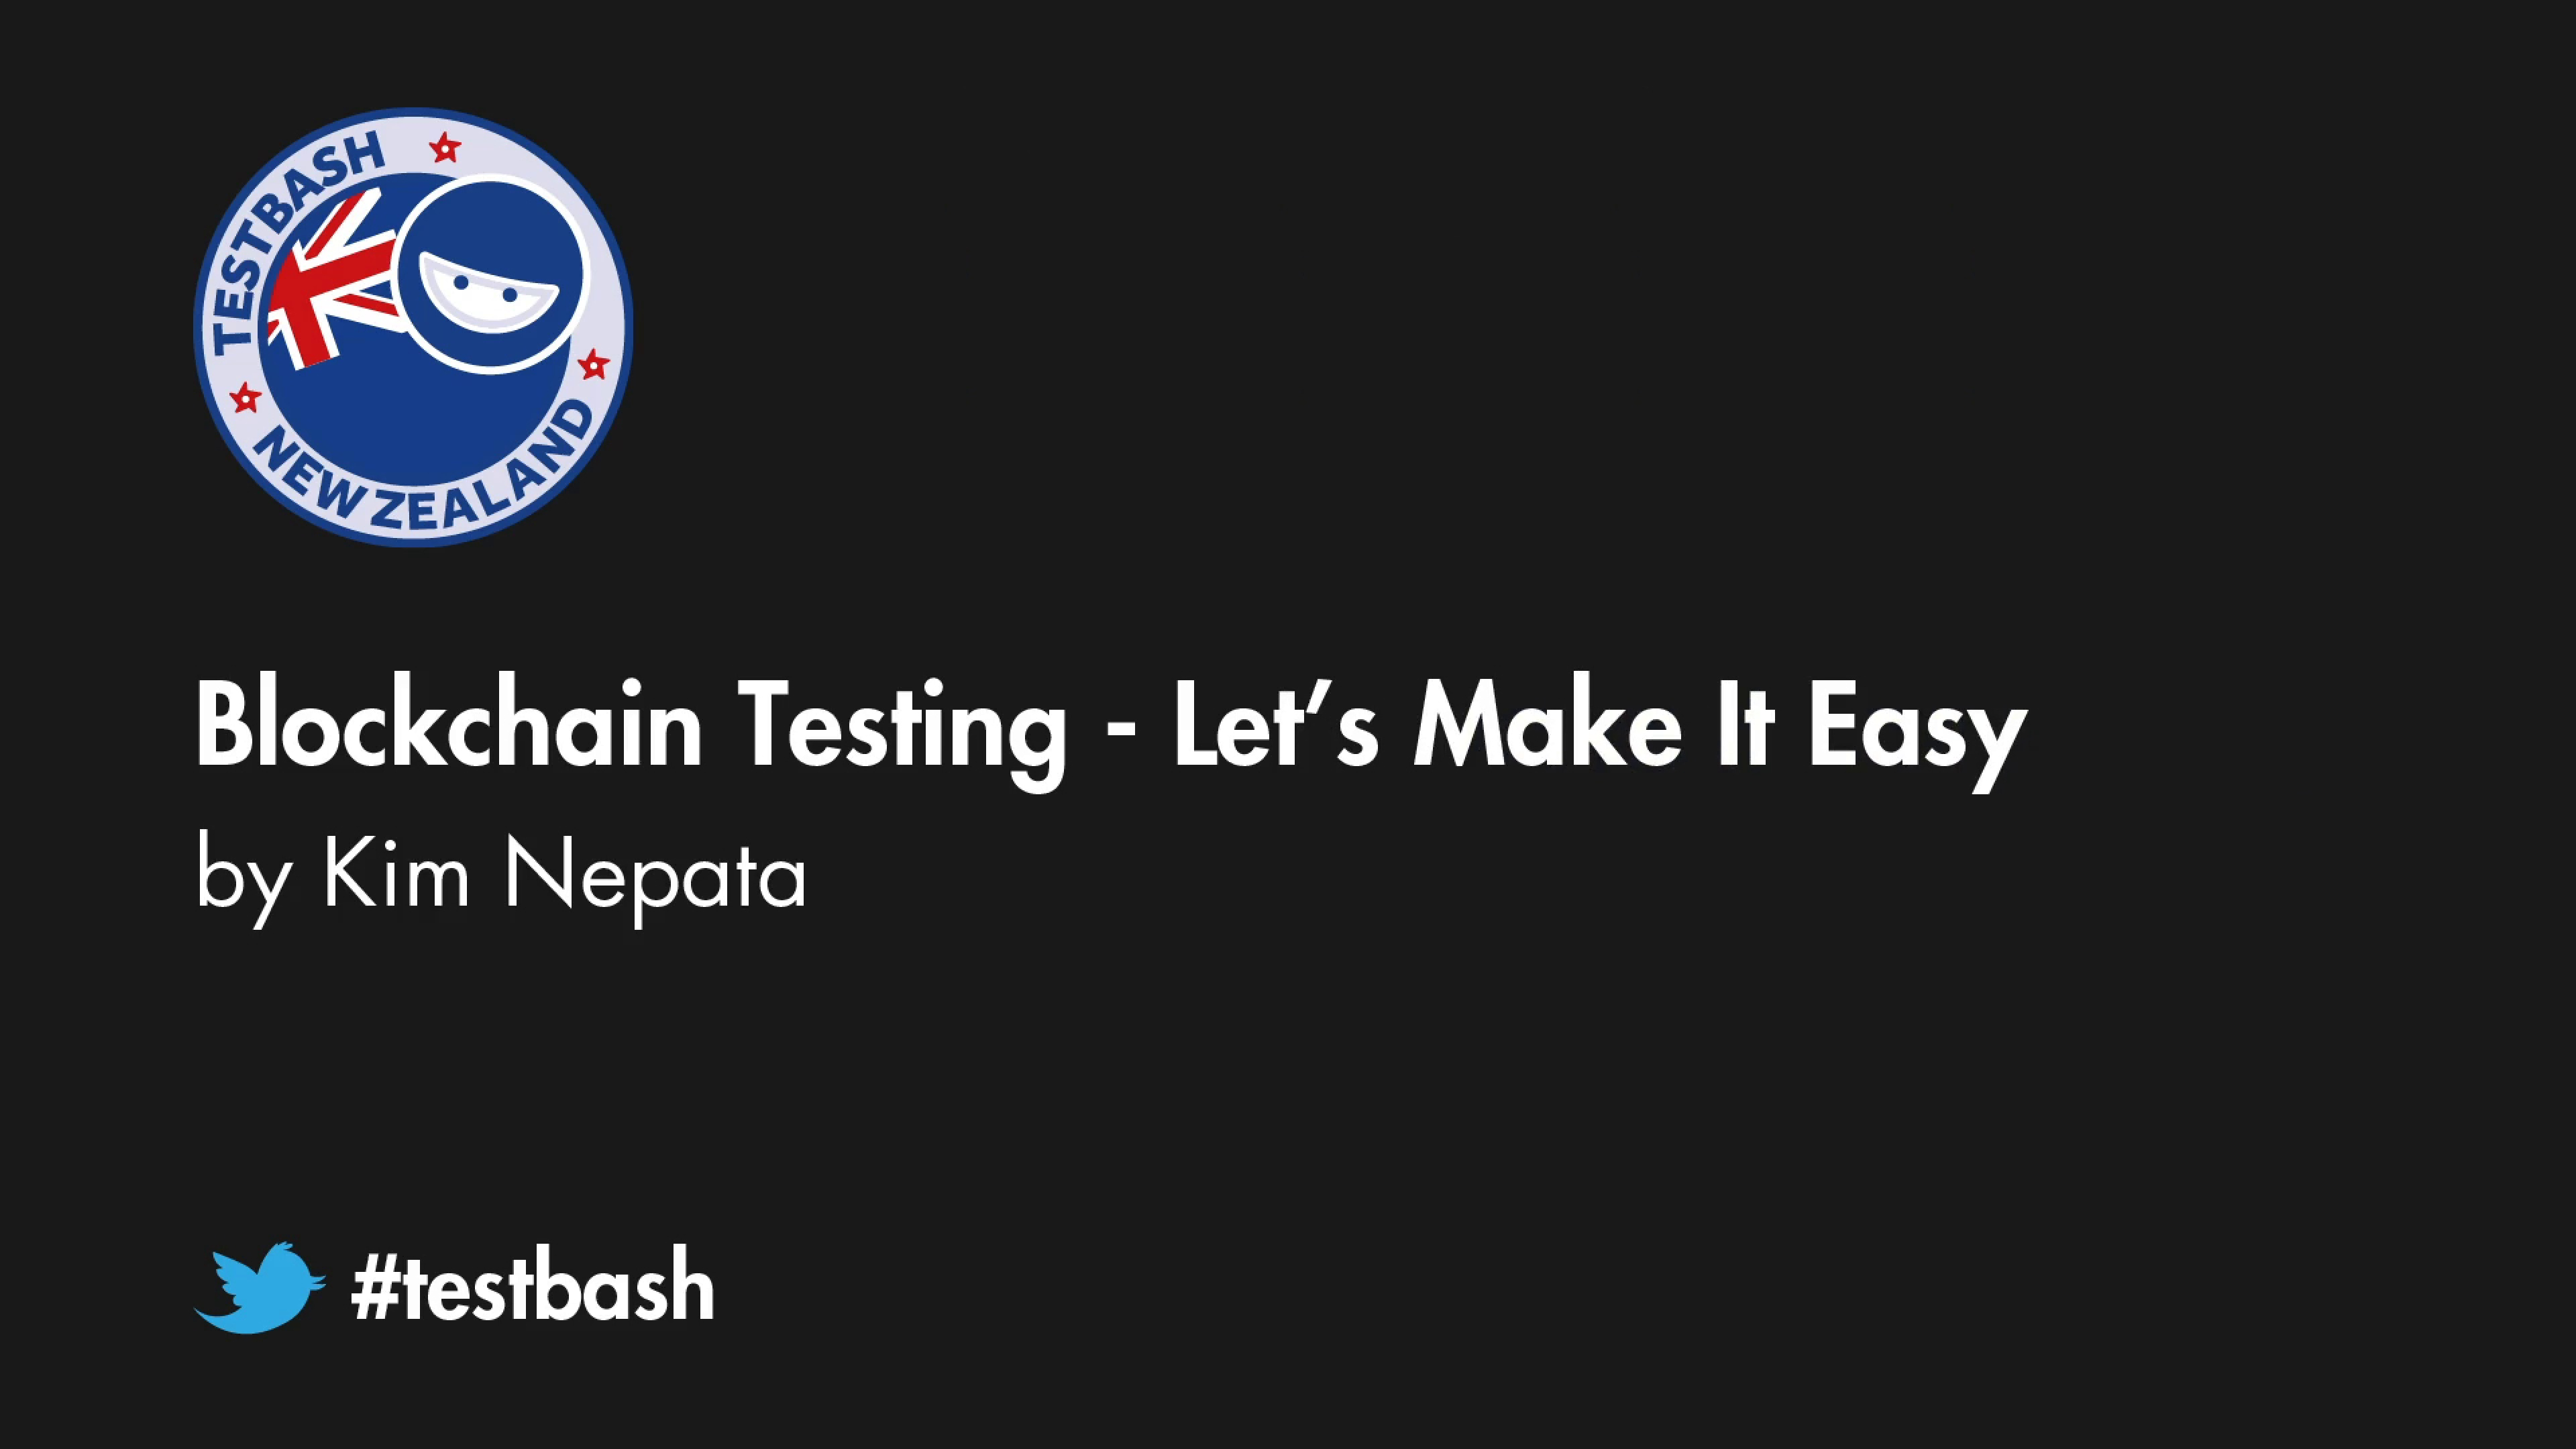 Blockchain Testing: Let's Make It Easy -Kim Nepata